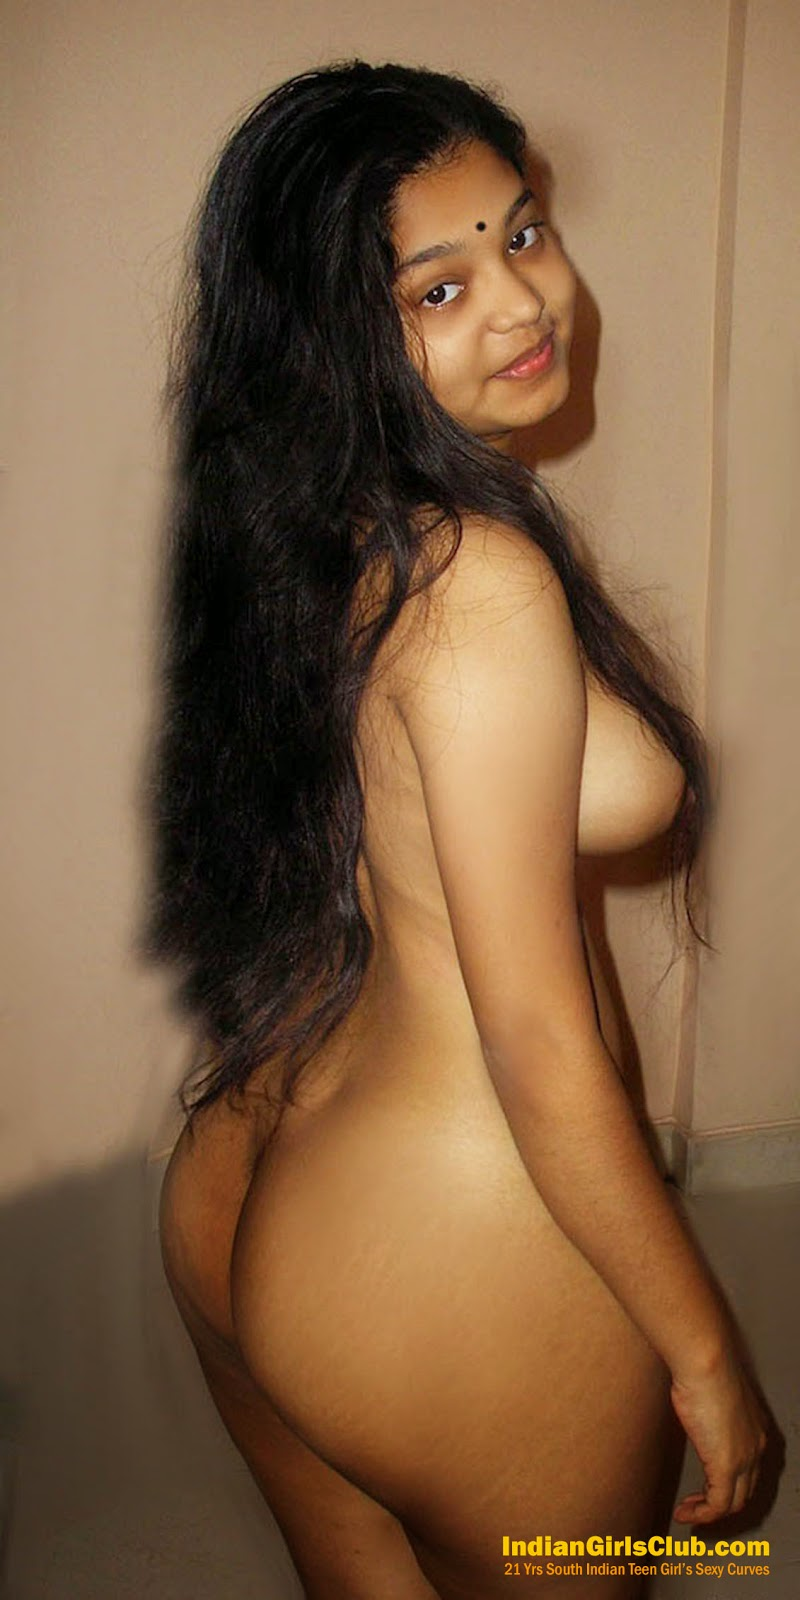 Marwari Sexy Woman Nude Photo